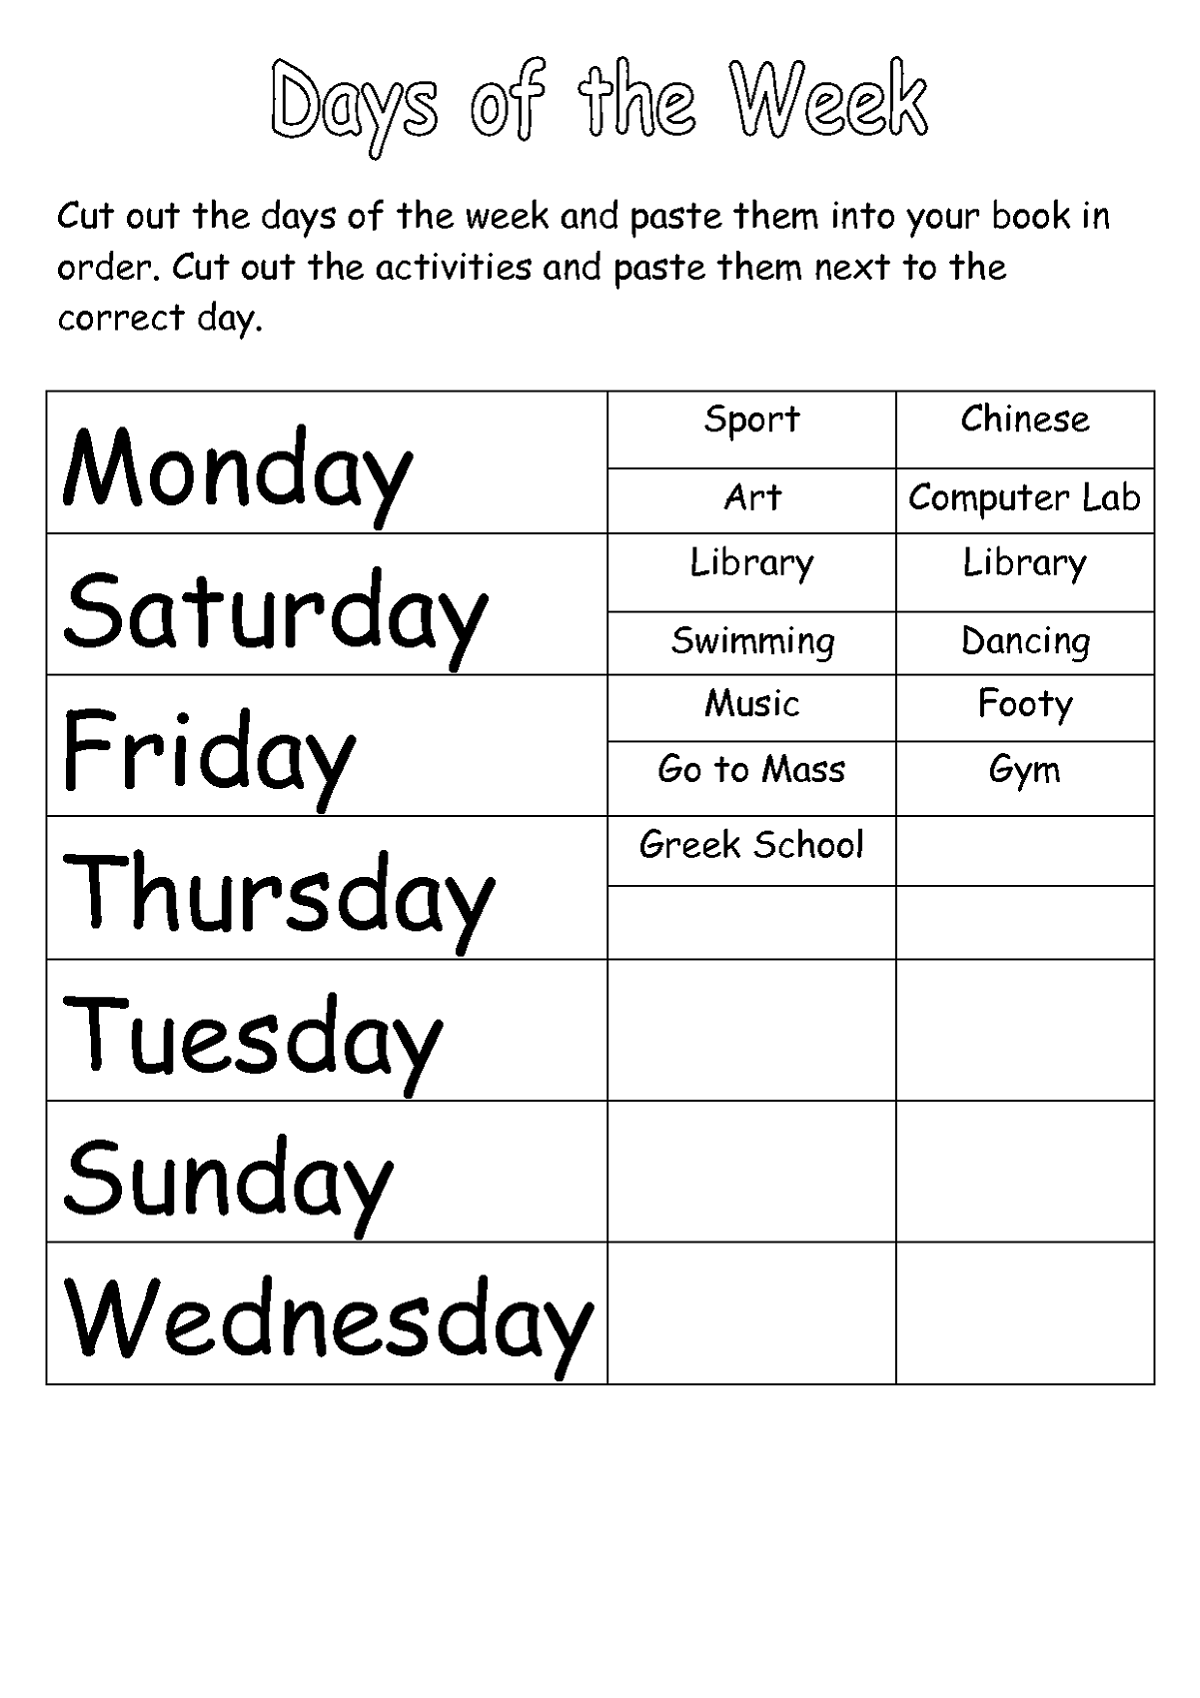 Worksheet For Days Of The Week For Kids